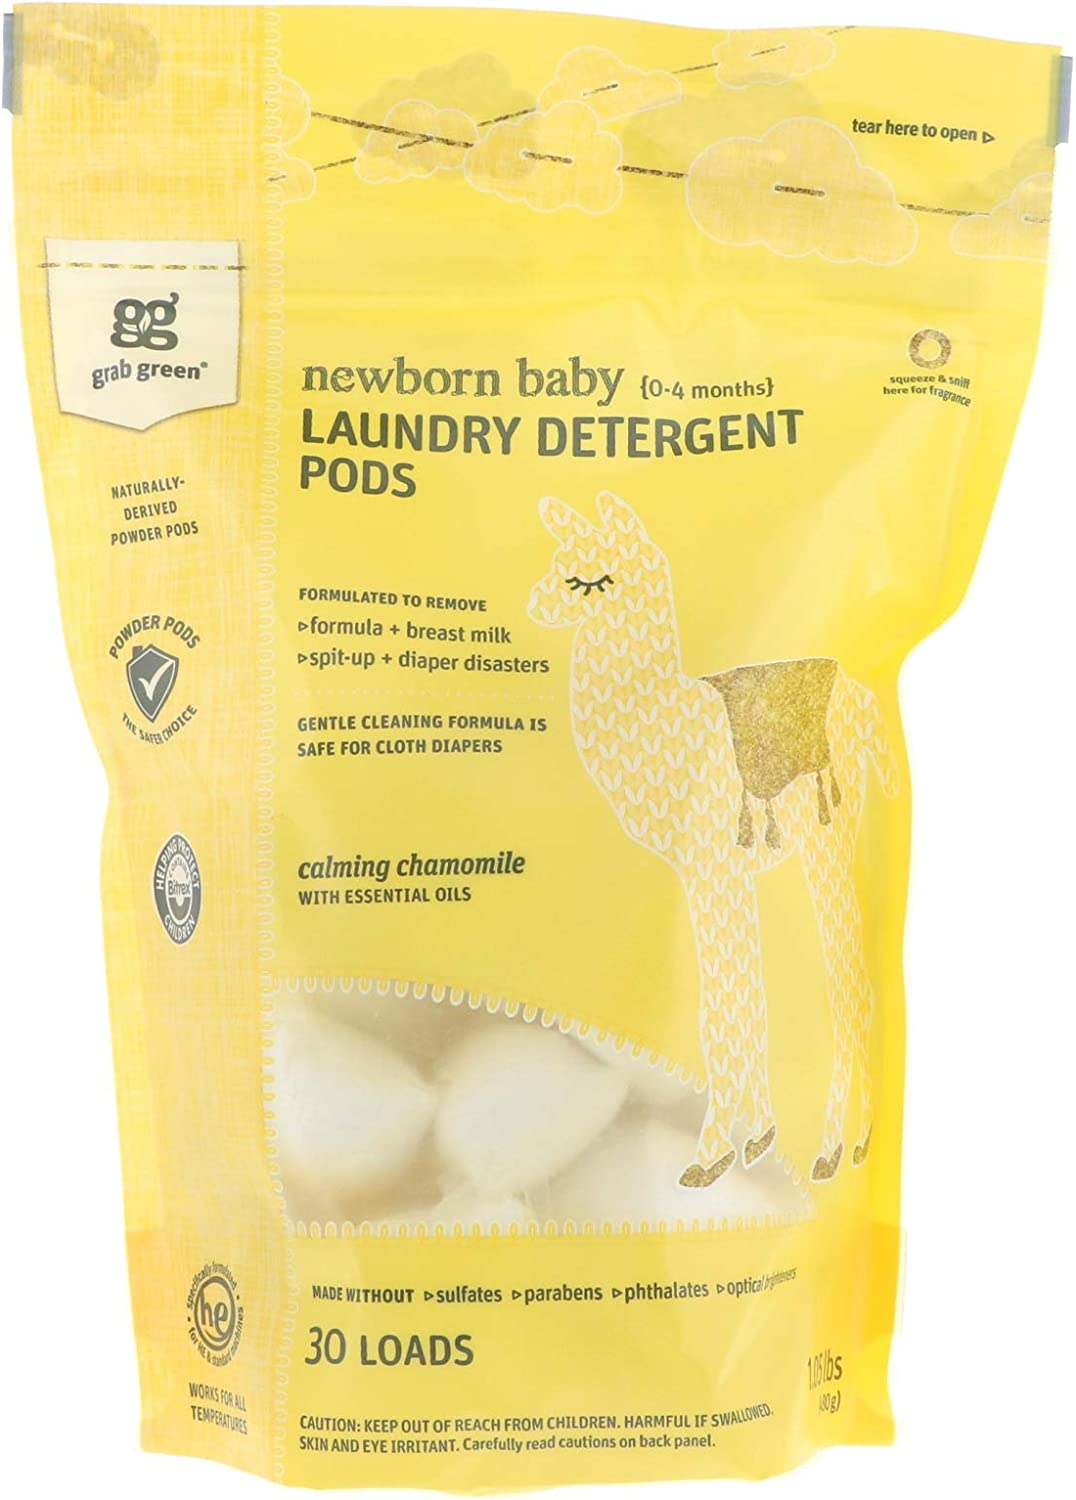 Grab Green Laundry Detergent Pods, Newborn Baby, 0-4 Months, Calming Chamomile with Essential Oils, 30 Loads, 1.05 lbs (480 g)